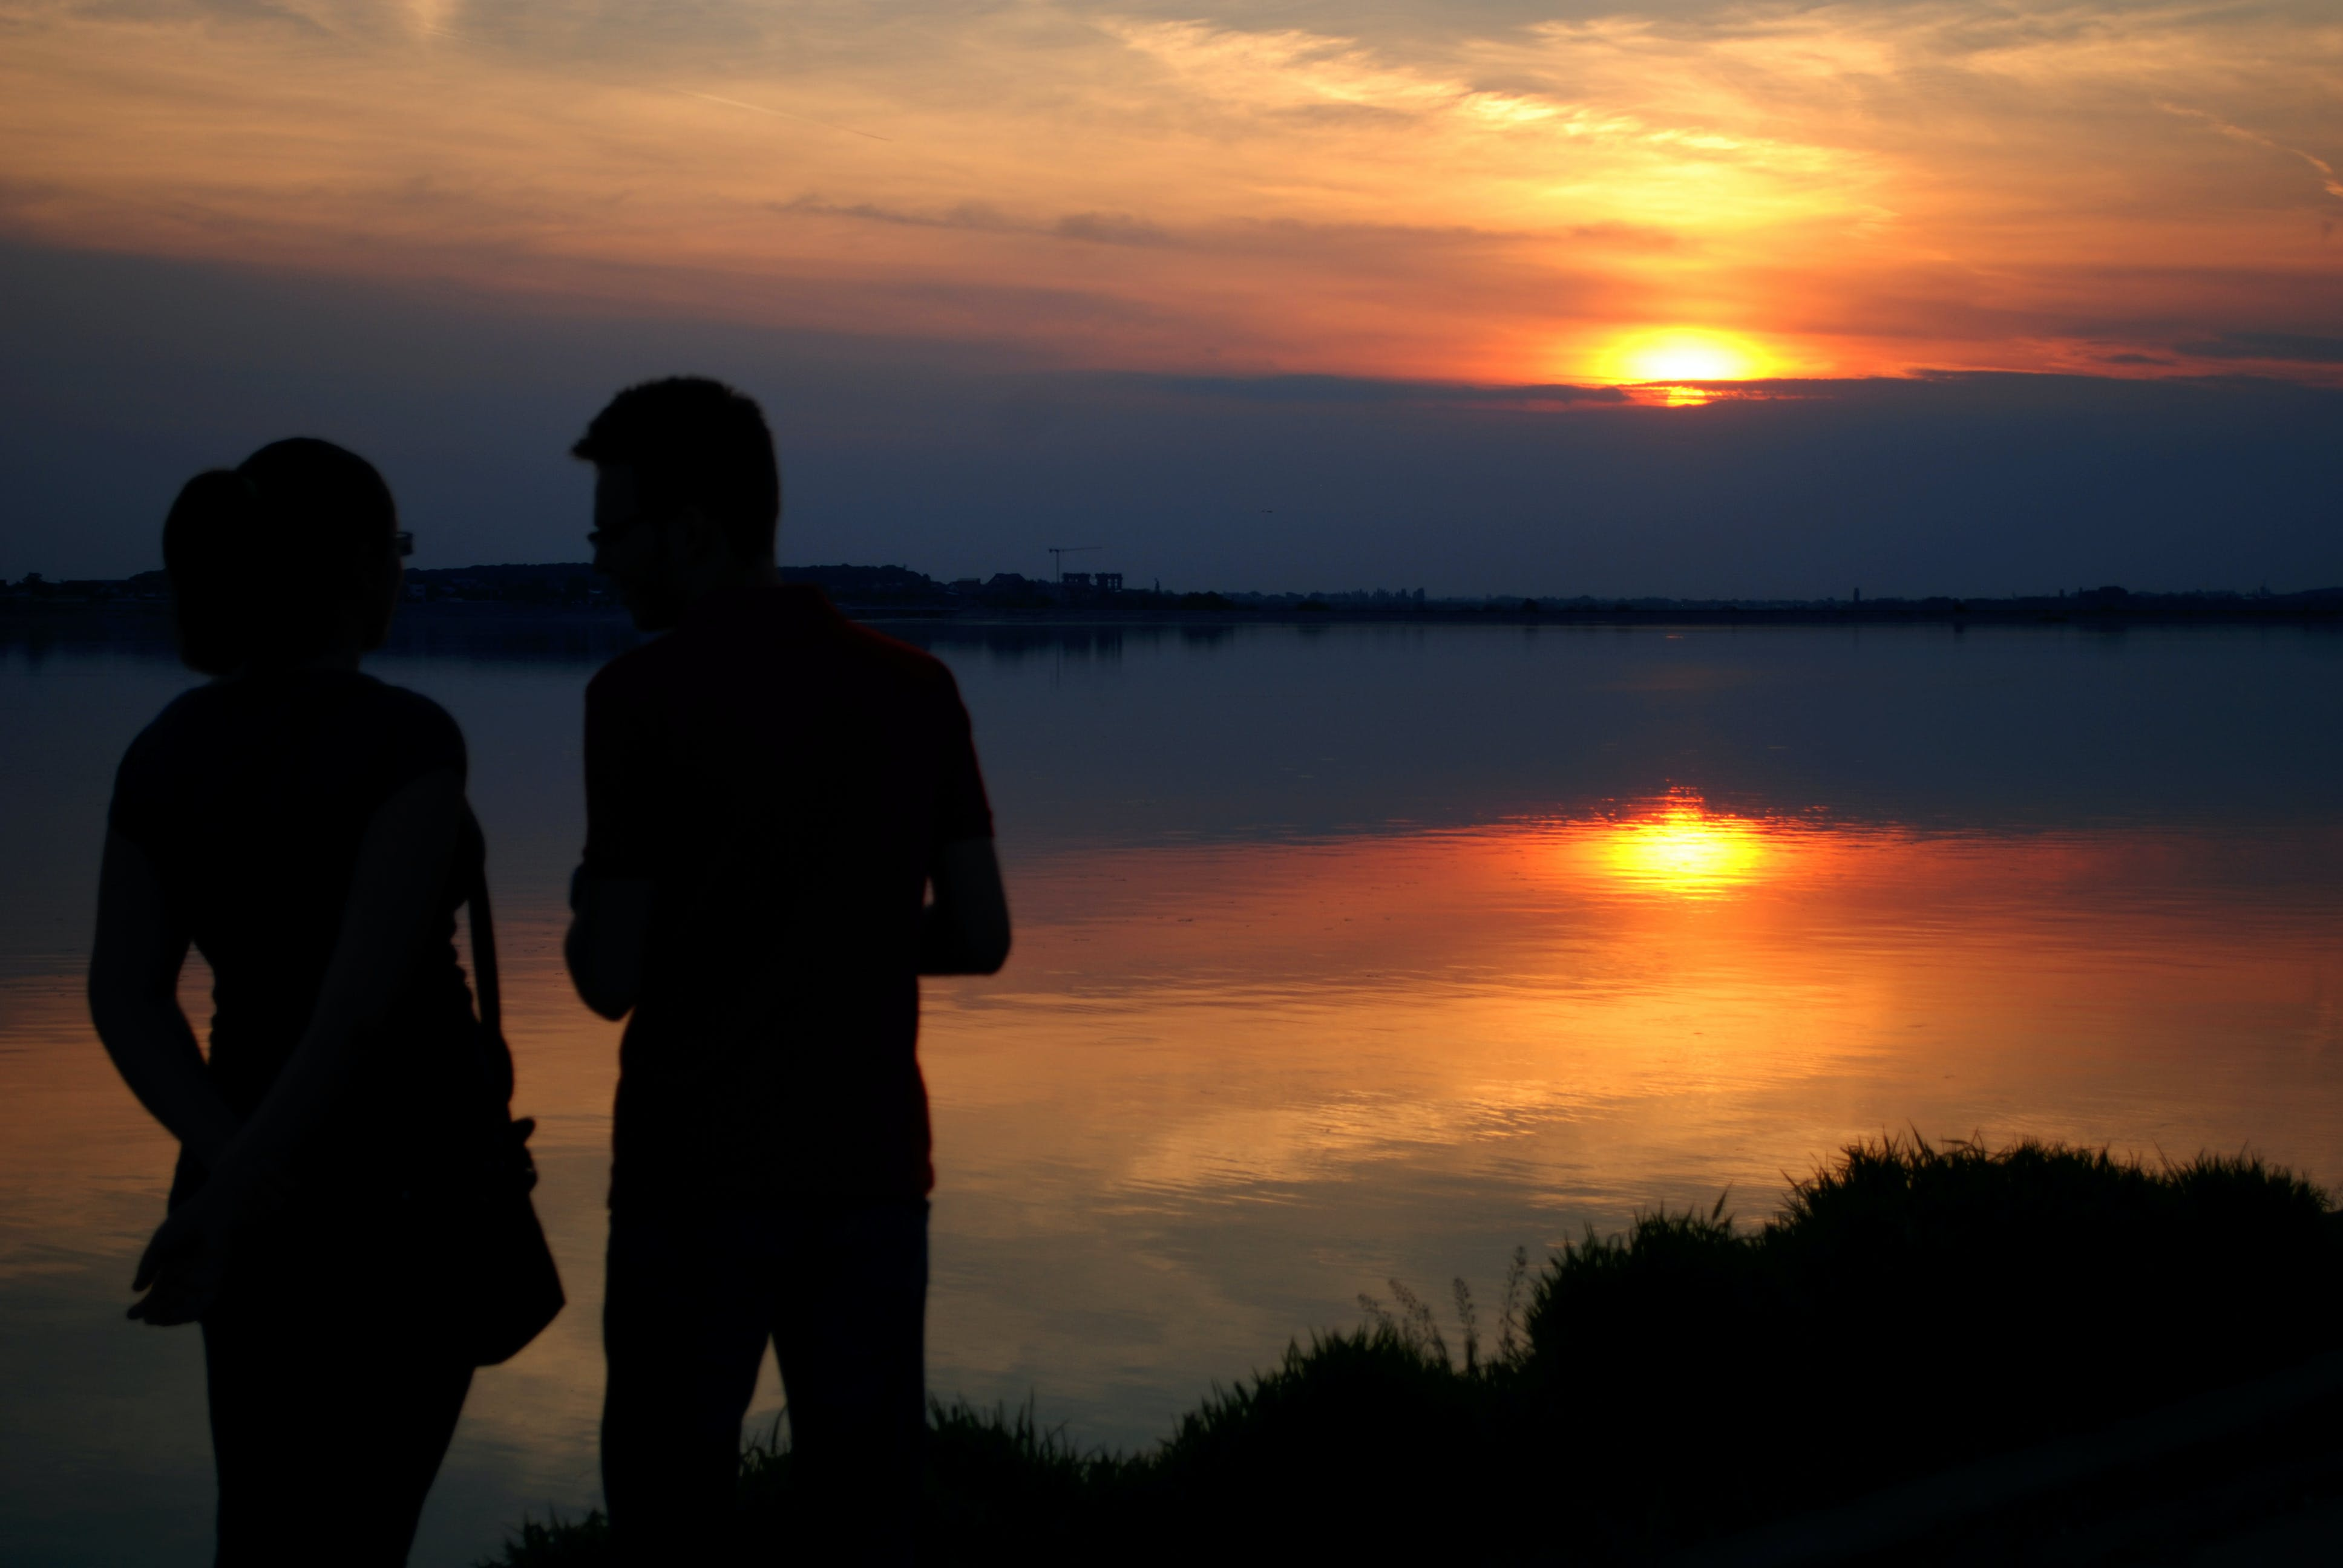 Silhouette of Man and Woman Near Water during Sun Set